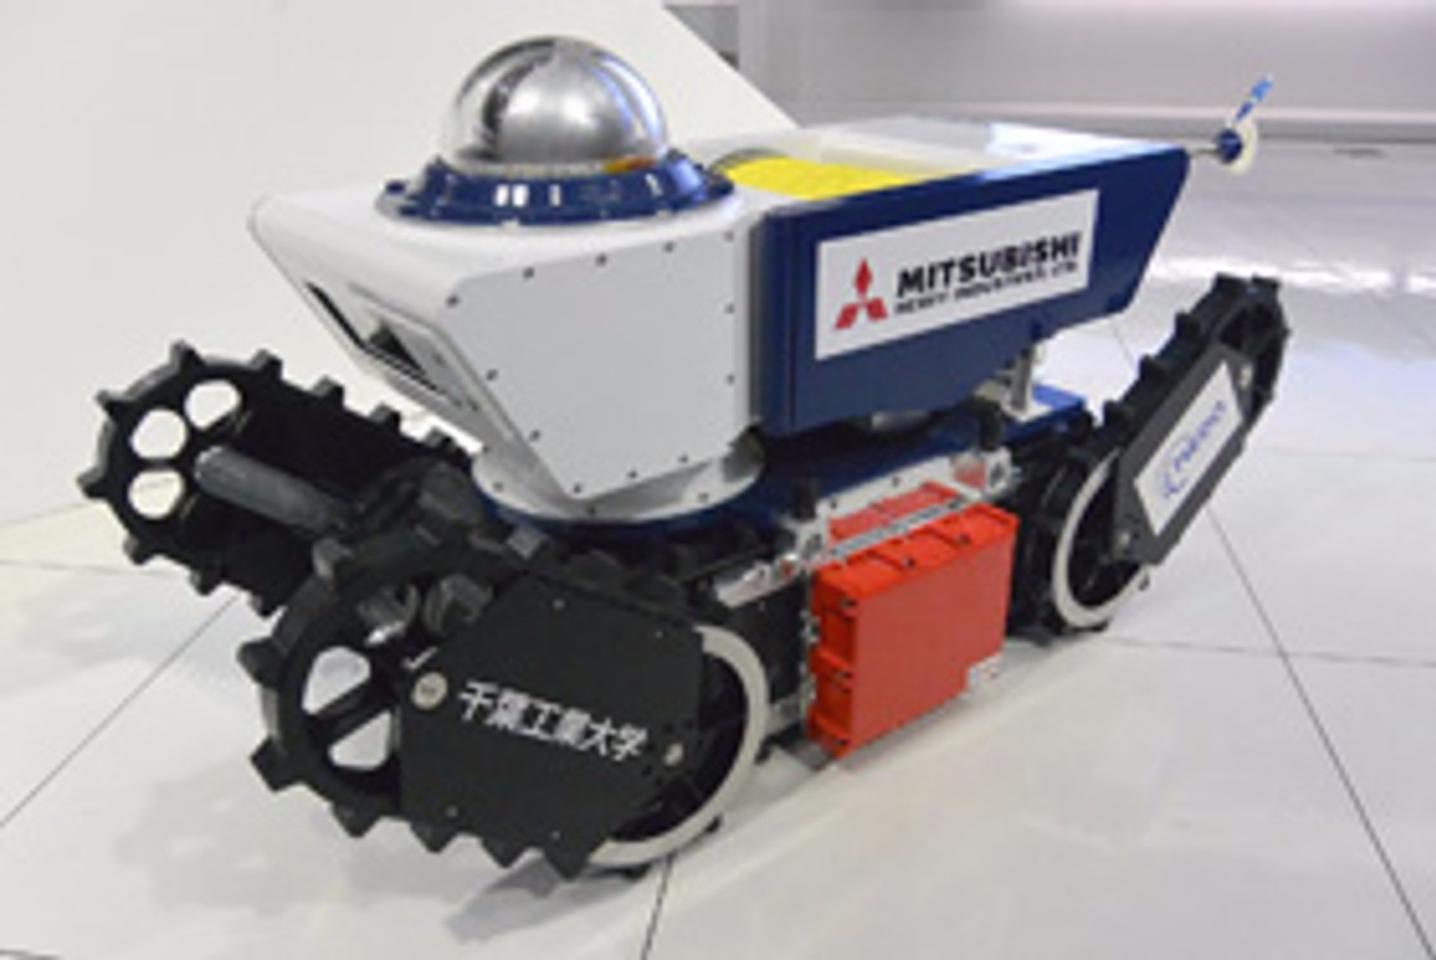 The robot uses positive pressure and a gas-tight hull to keep explosive gases away from the robot's electrics